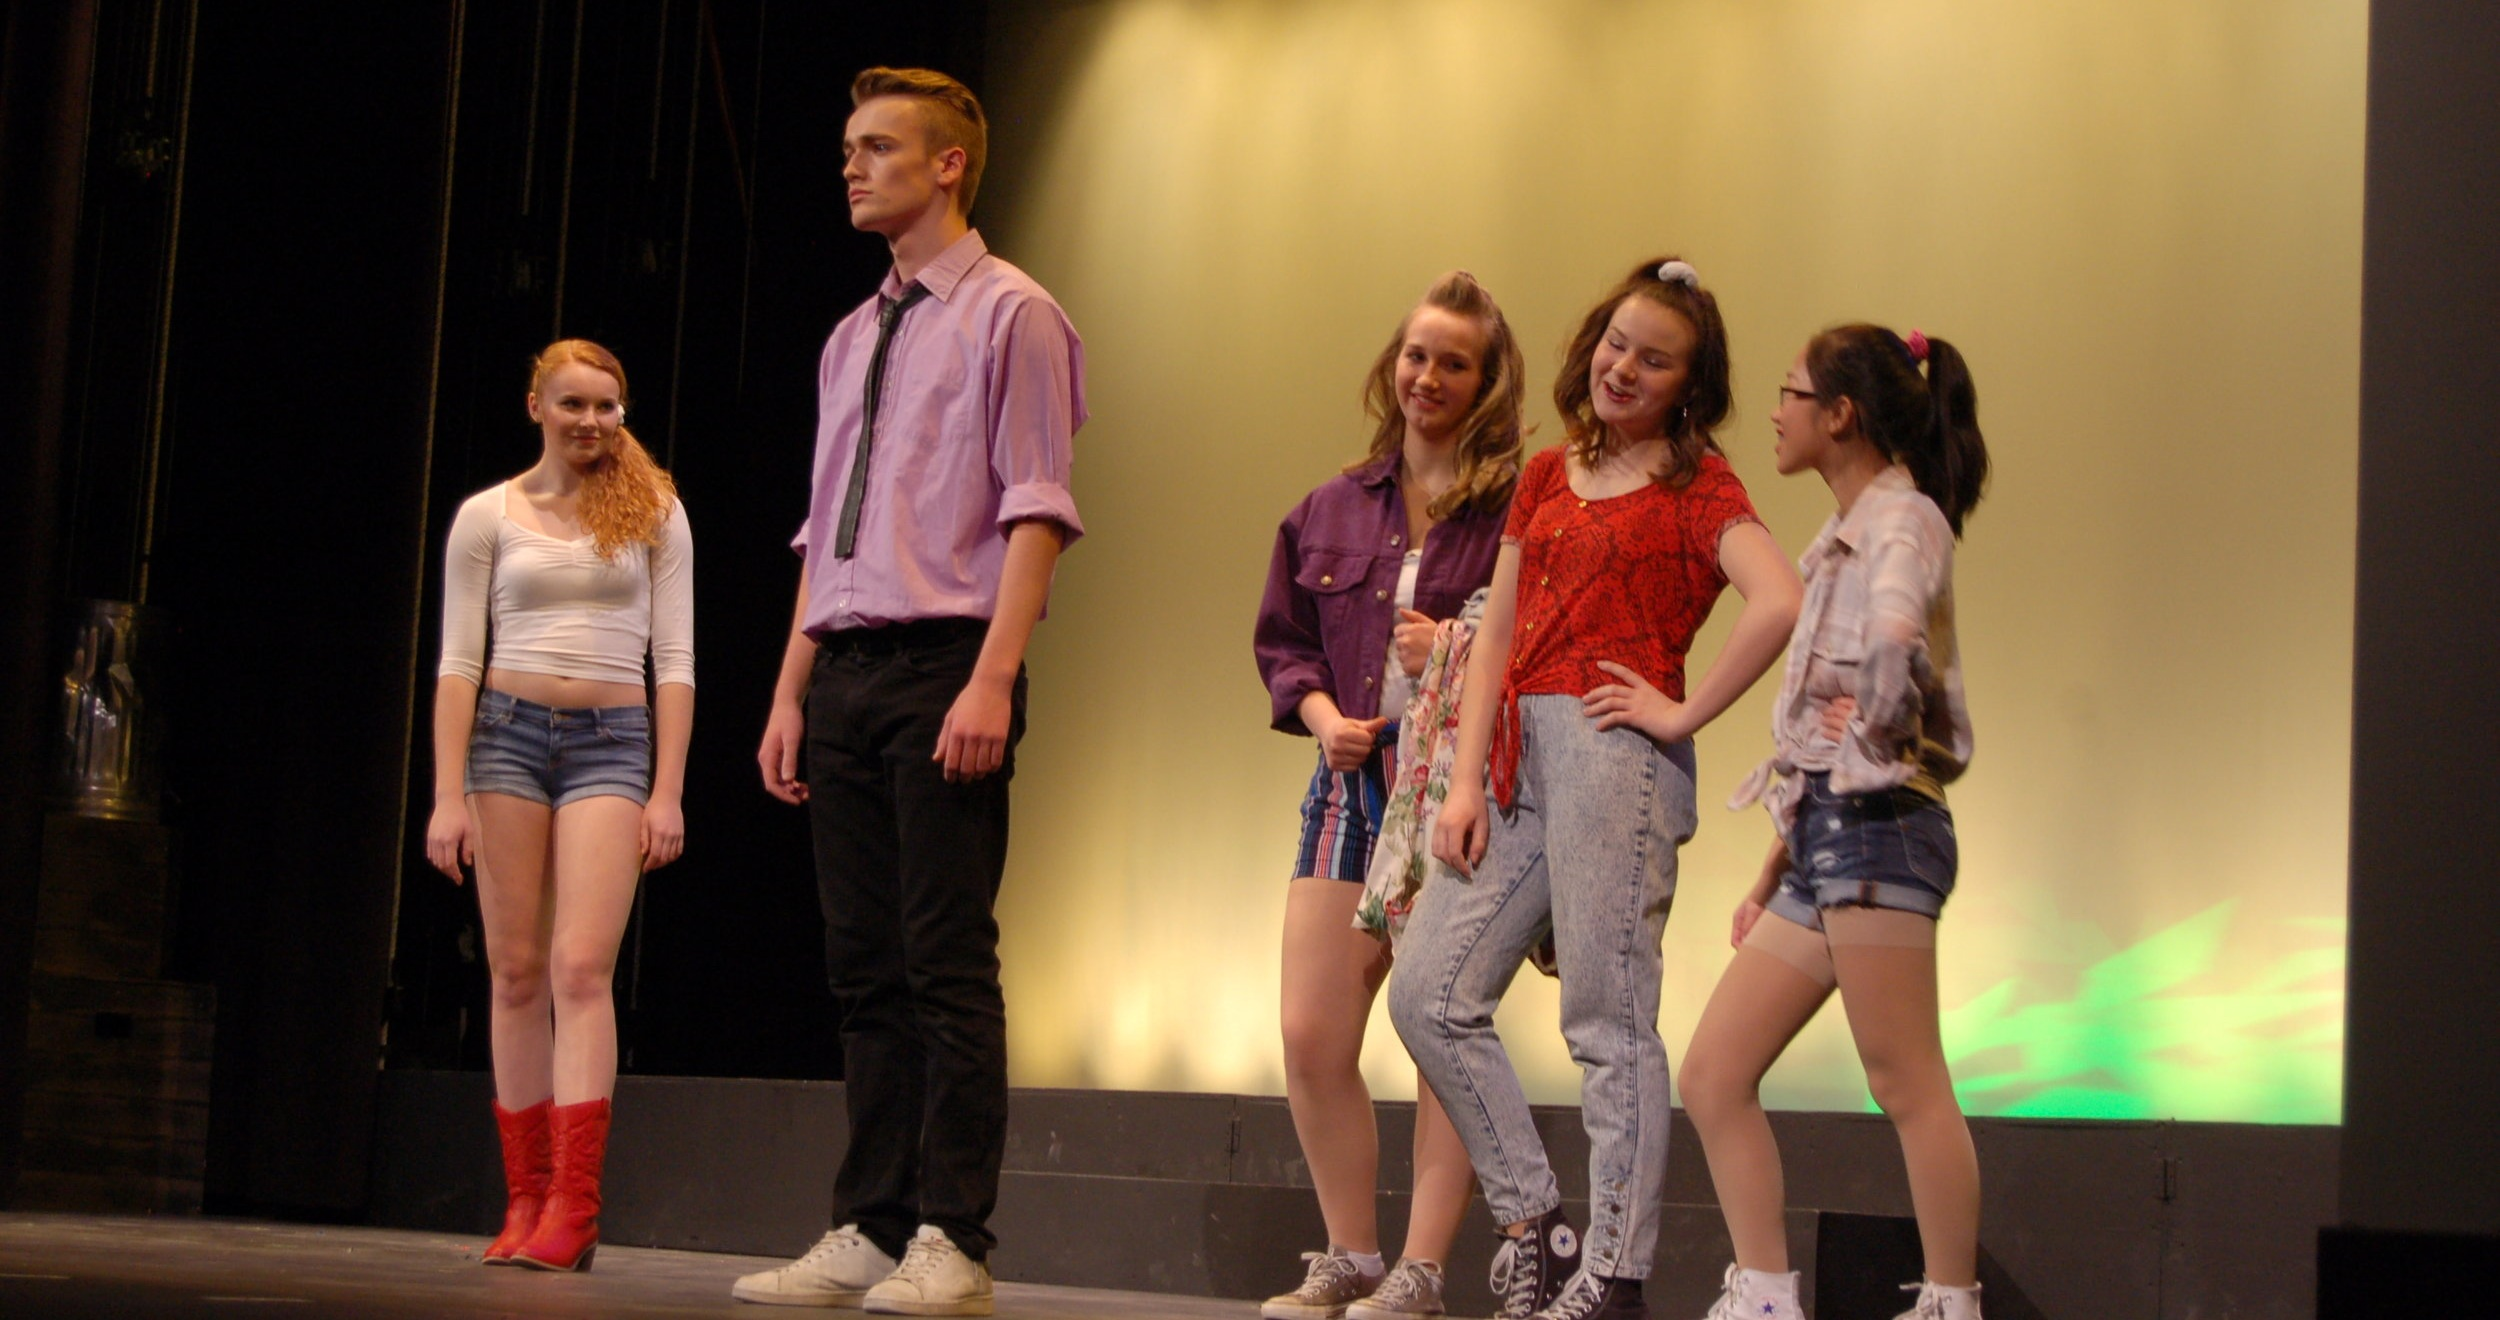 From left, Ariel, played by Sophia Martin, Ren, played by Noah Cordes, Rusty, played by Stephanie Fortune, Urleen played by Lily St. Onge, and Wendy Jo played by Meika Nadeau.